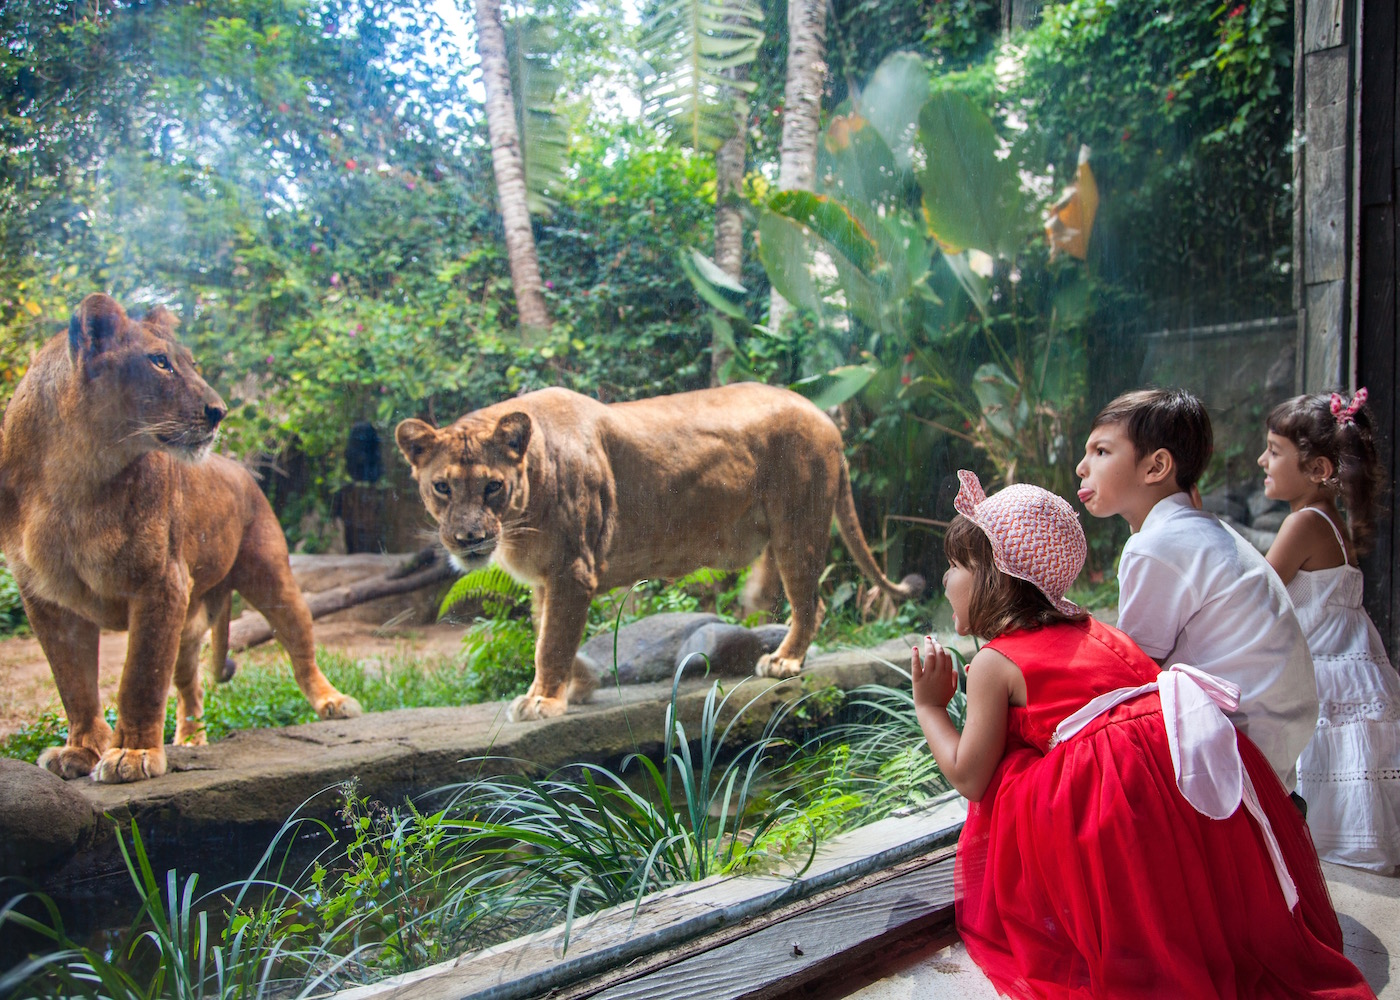 Looking for a wild day out with the family? Get up close & personal with animals at Bali Zoo